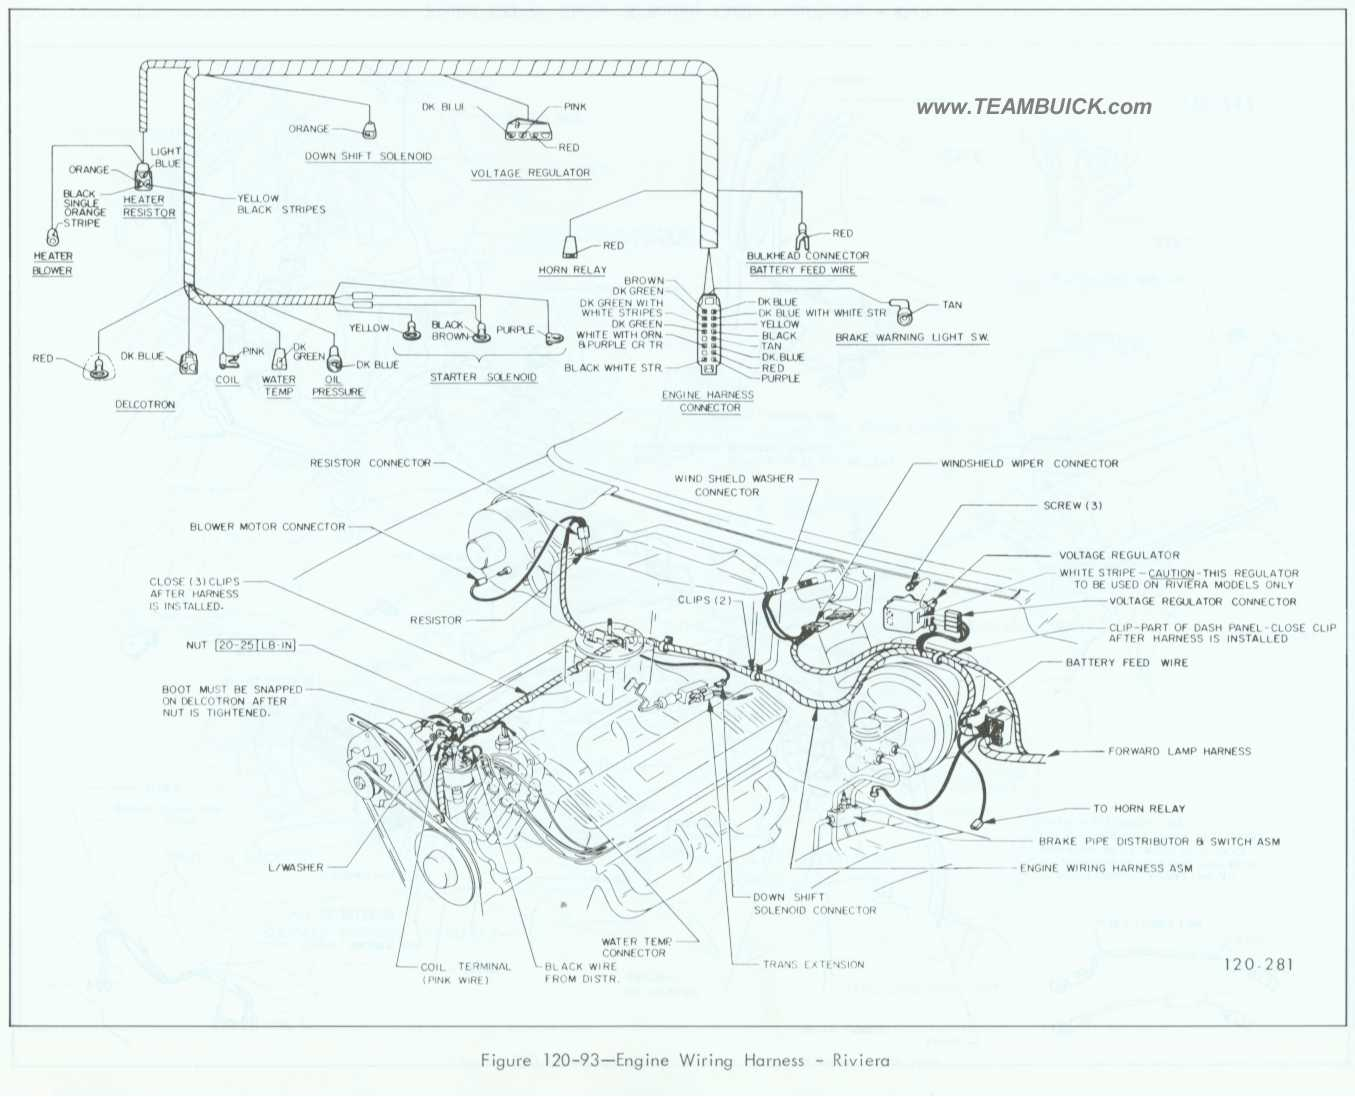 hight resolution of 1972 buick skylark wiring schematic wiring library 1972 gsx 1967 buick riviera engine wiring harness rh